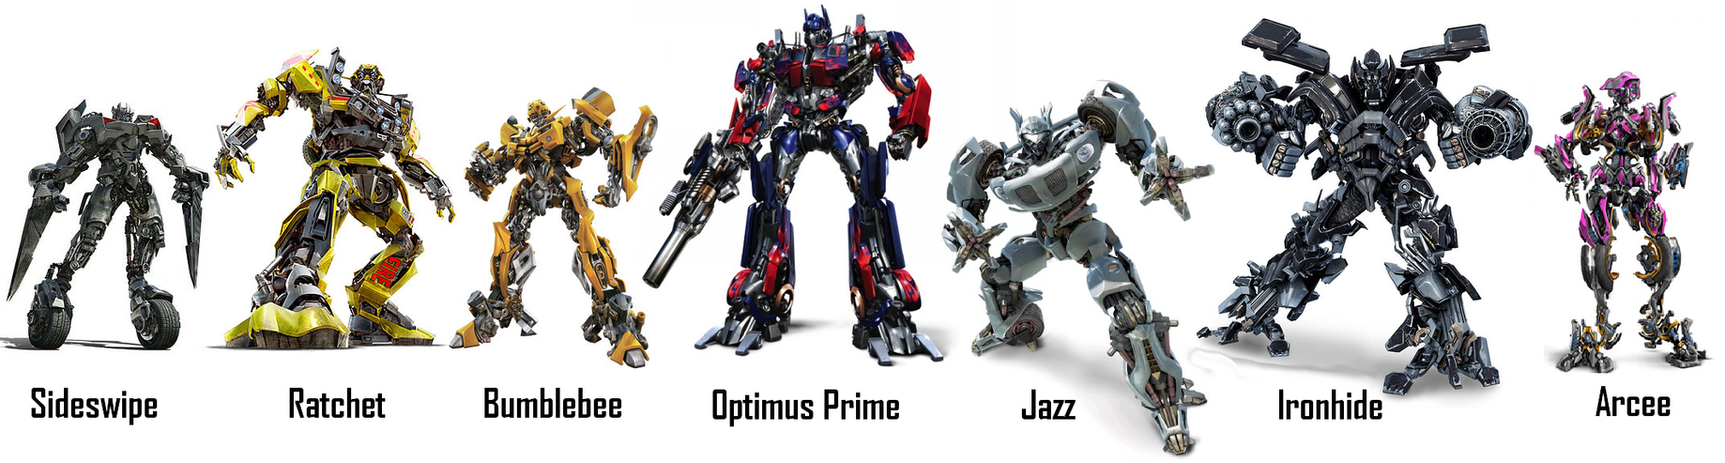 Transformers 3 Characters Autobots | www.imgkid.com - The ...